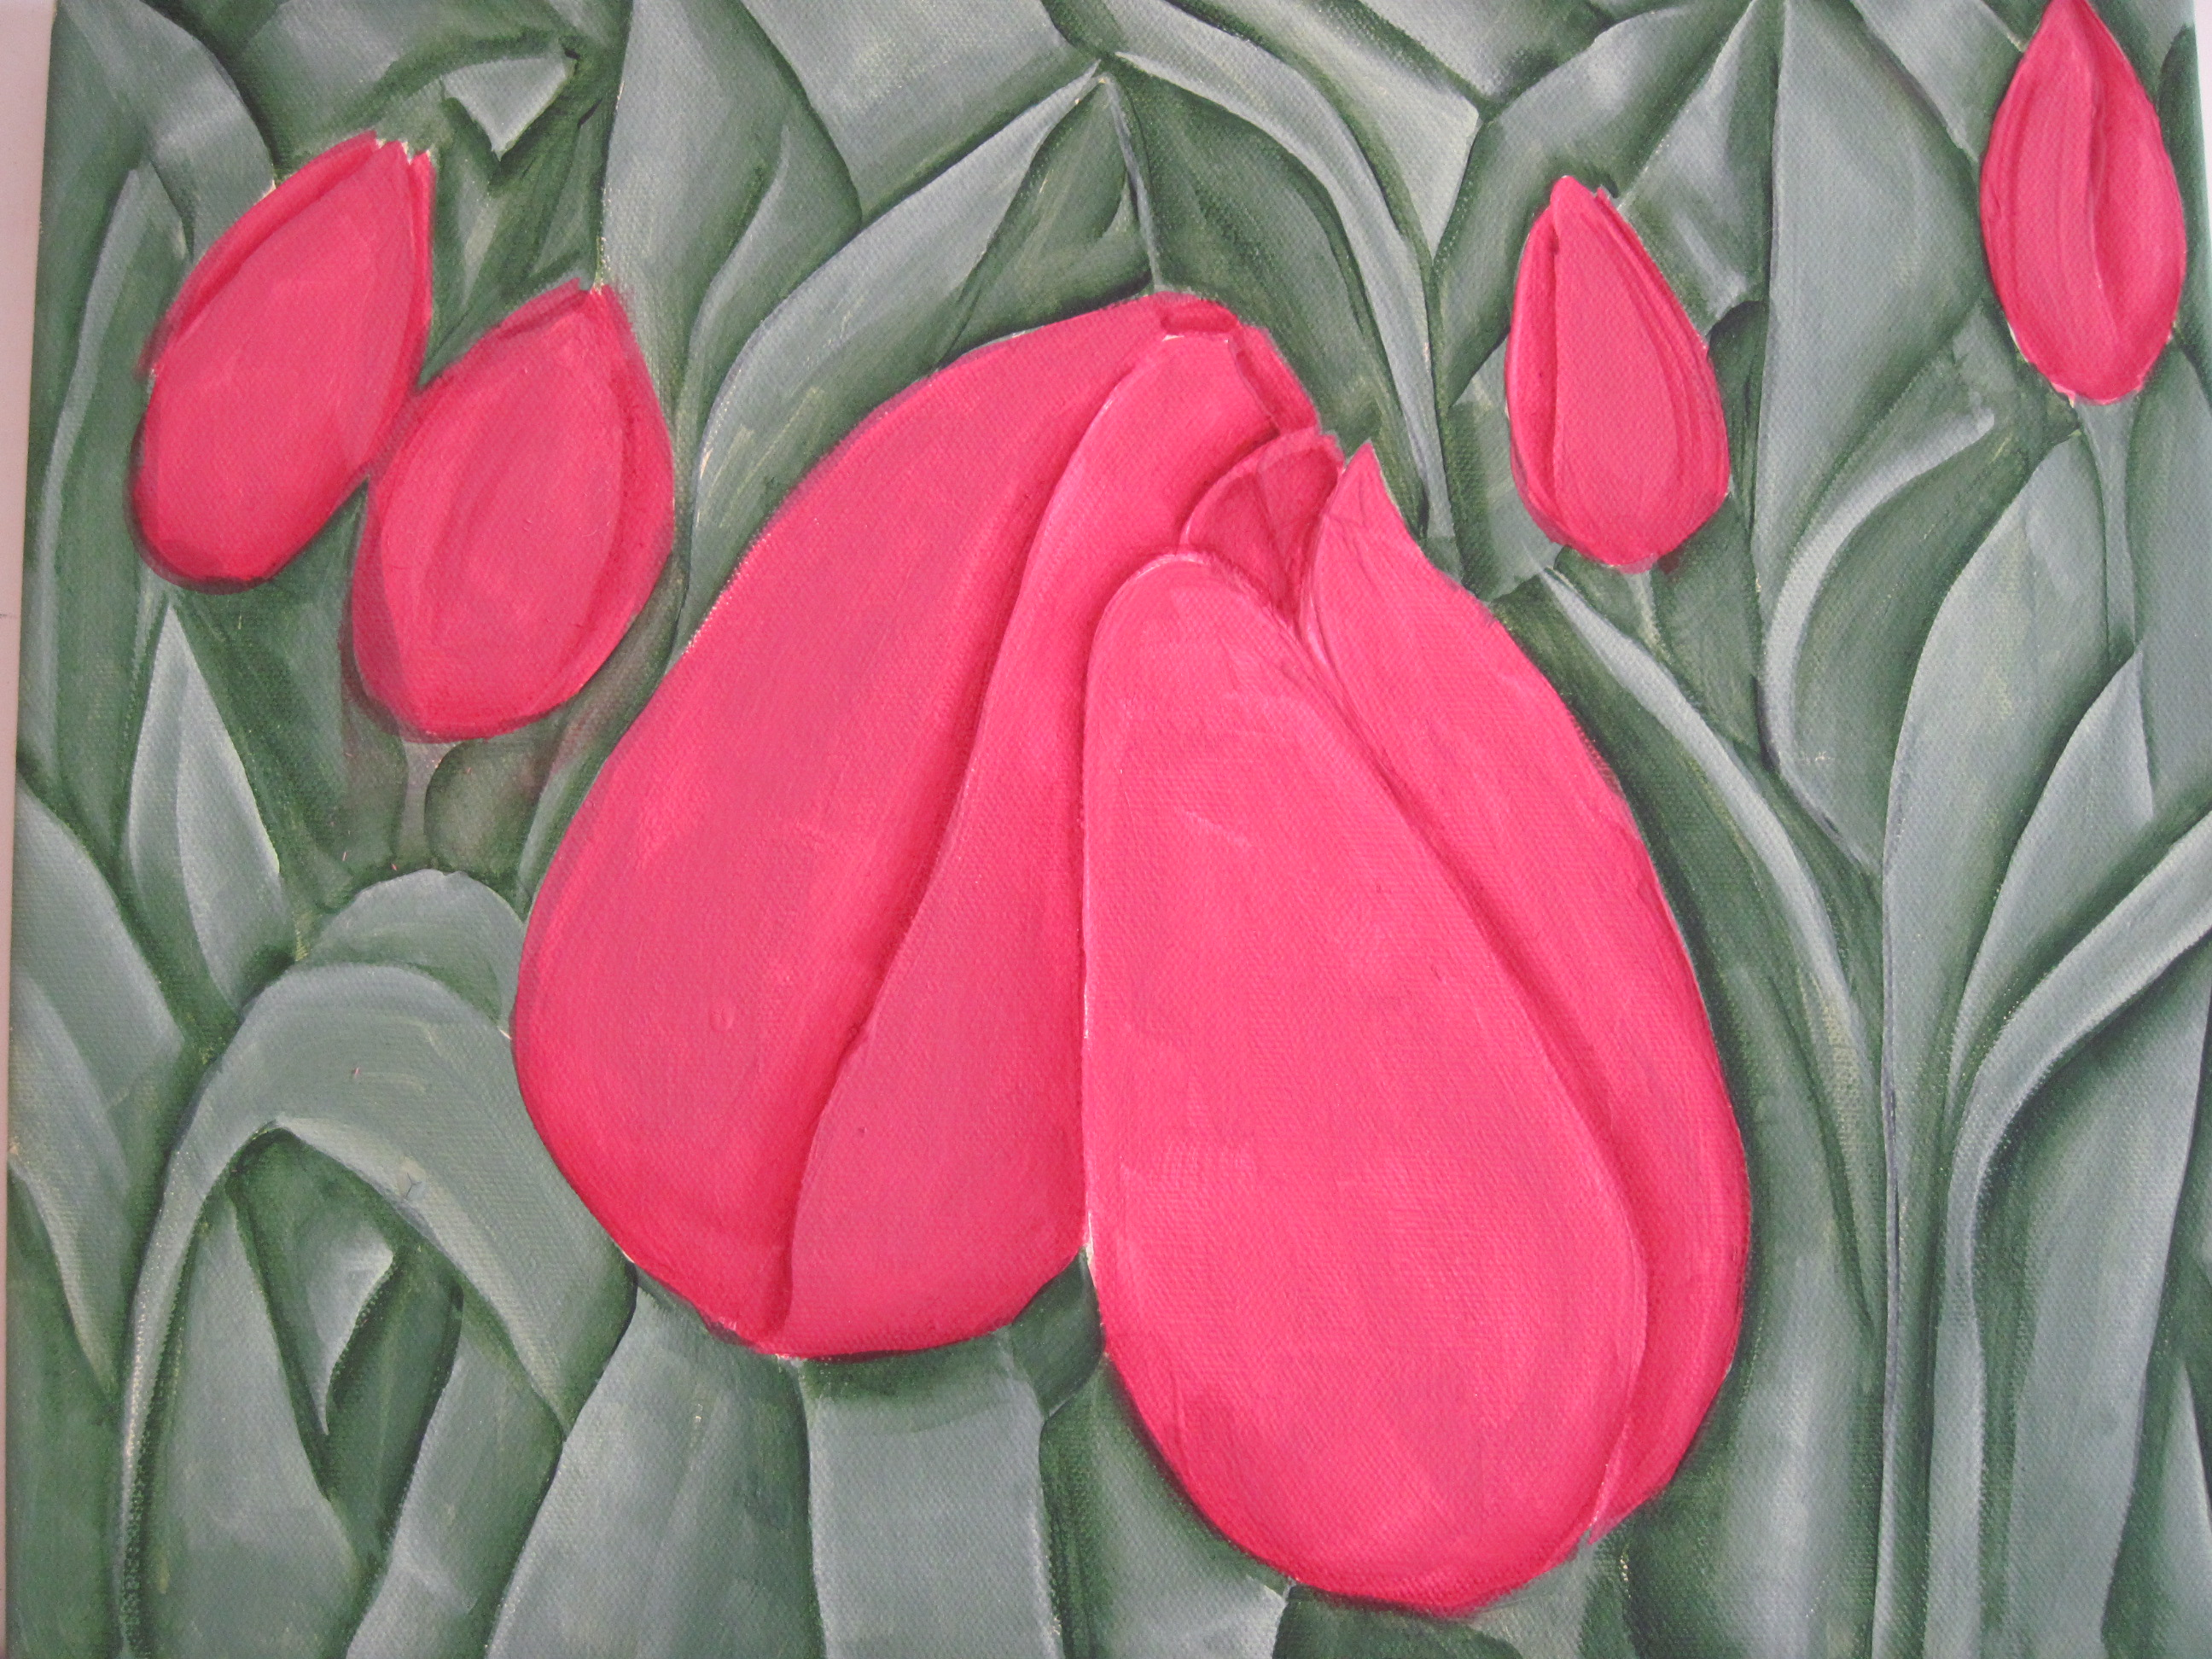 Tulips - In Progress